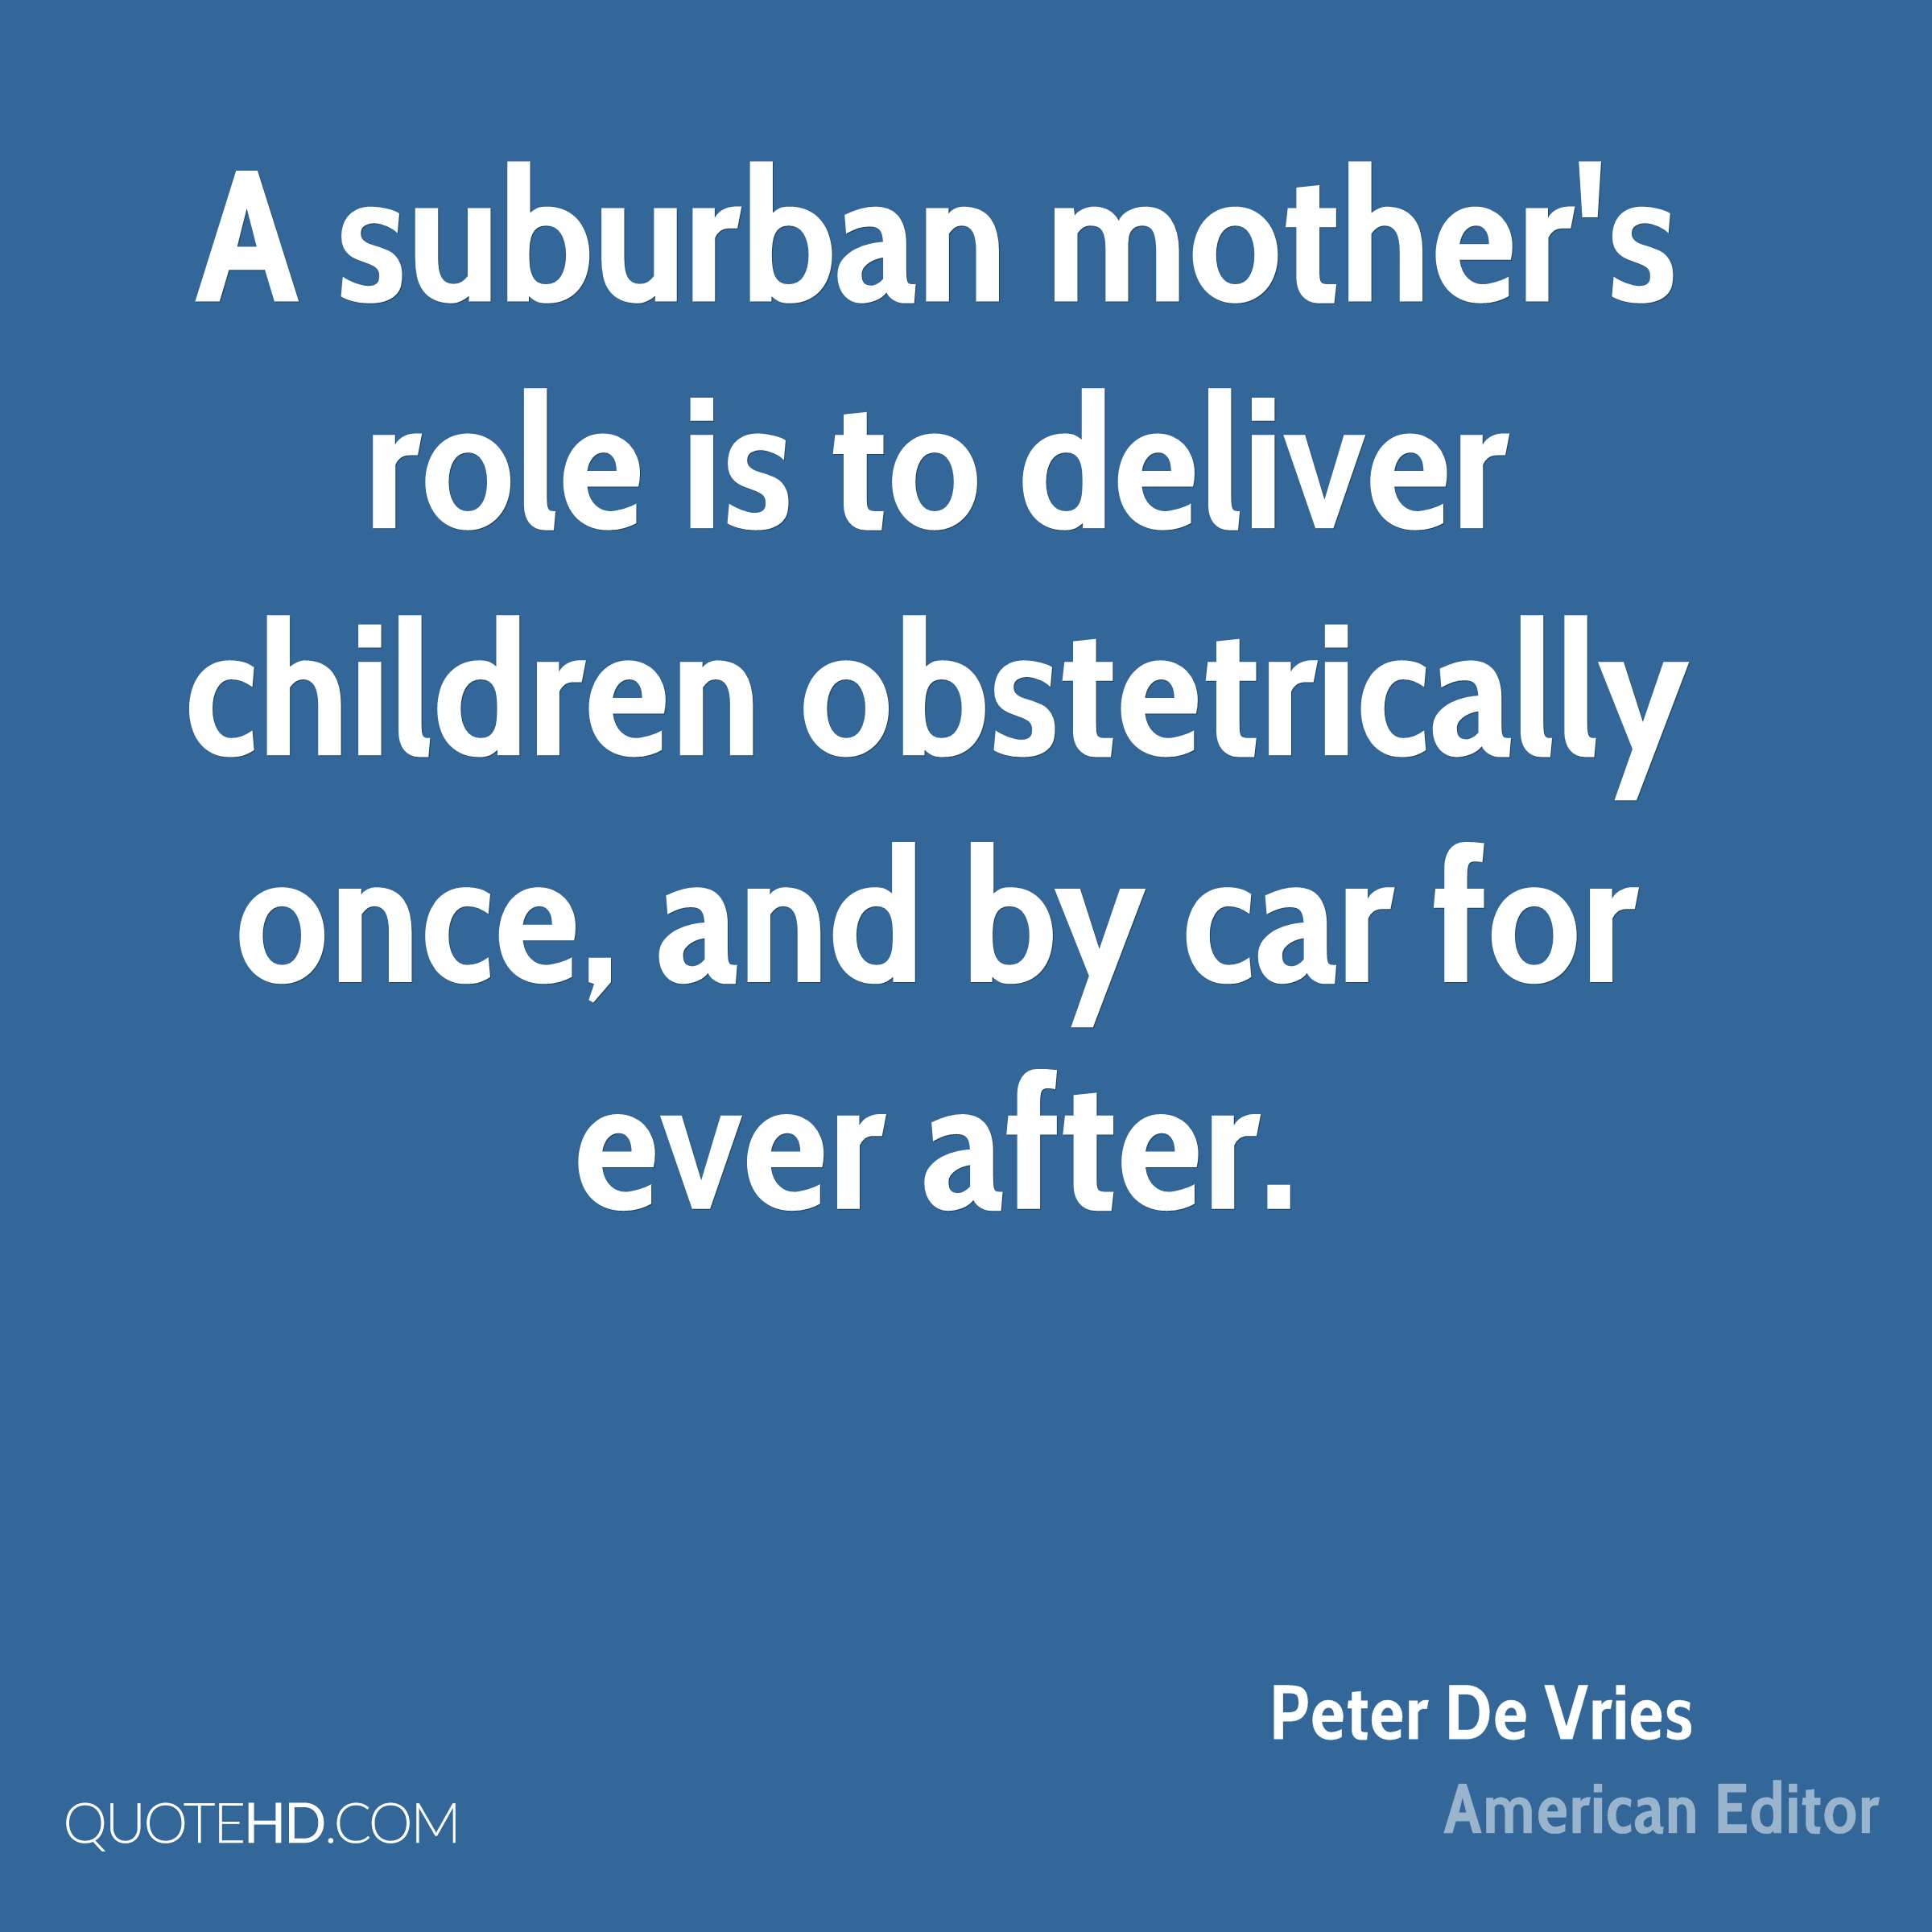 A suburban mother's role is to deliver children obstetrically once, and by car for ever after.